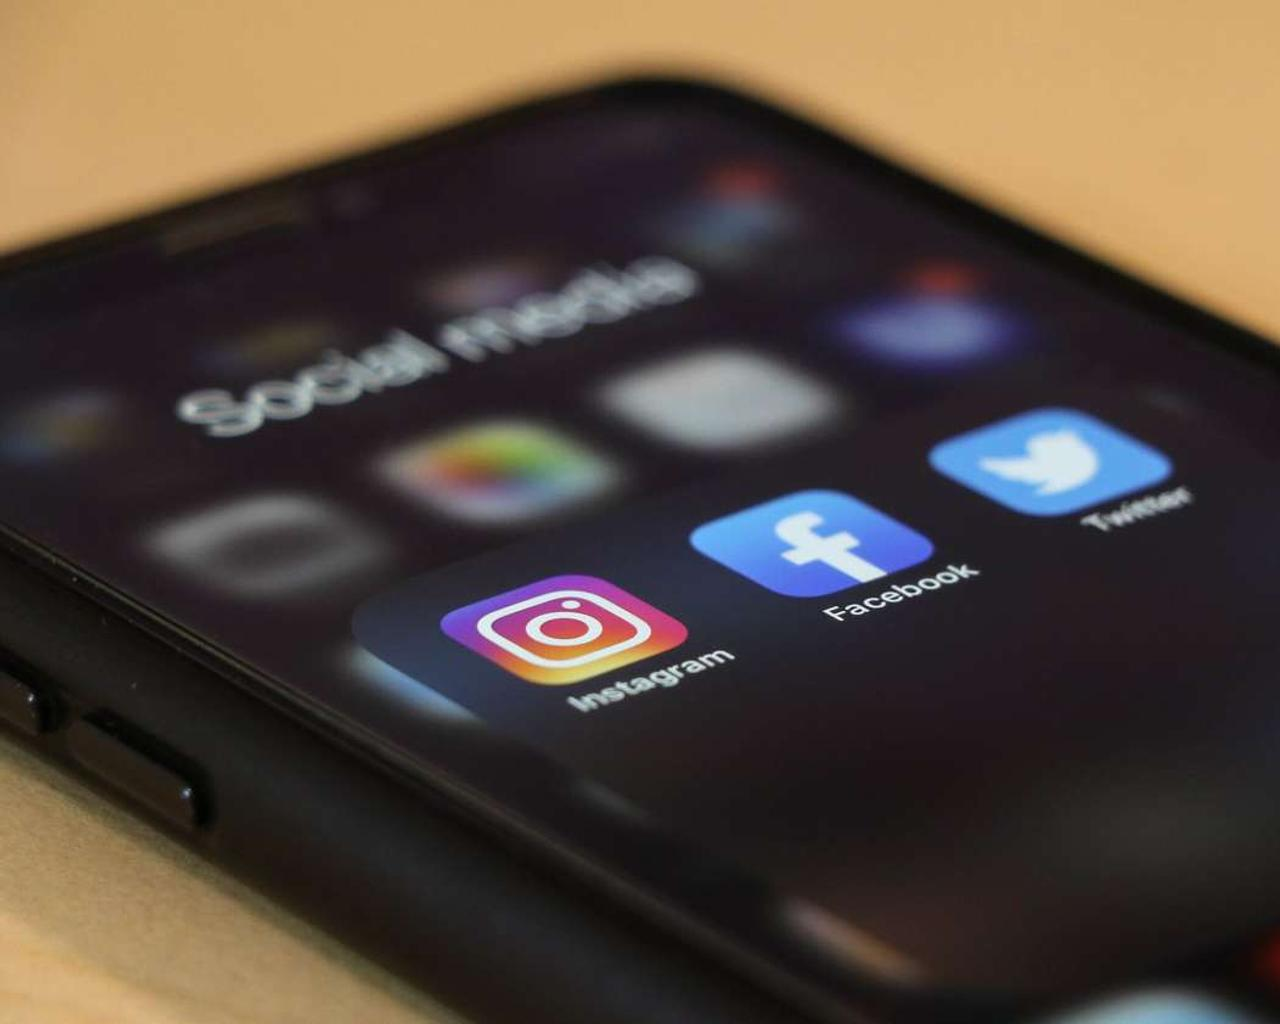 Have social platforms reached their peak? Pew Research survey shows little user growth since last year.